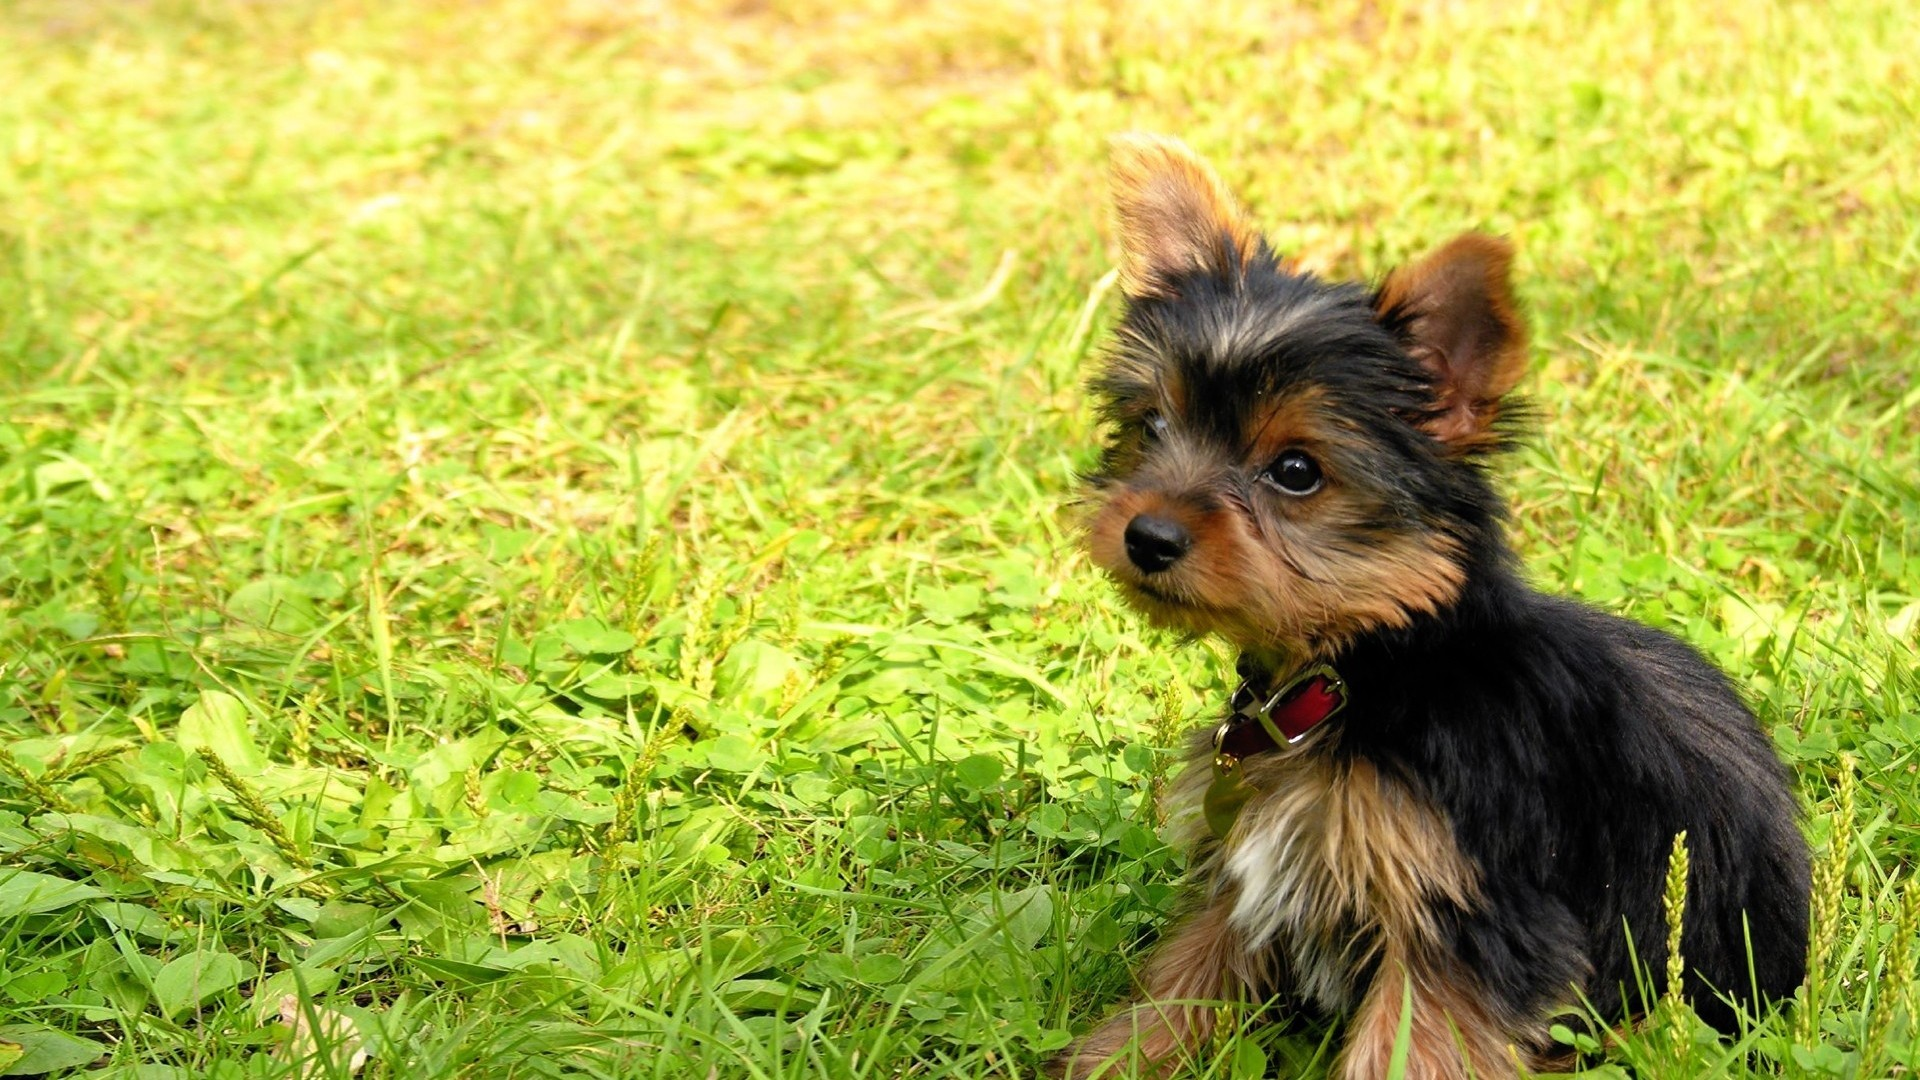 1920x1080 Preview wallpaper yorkshire terrier, puppy, baby, dog, grass